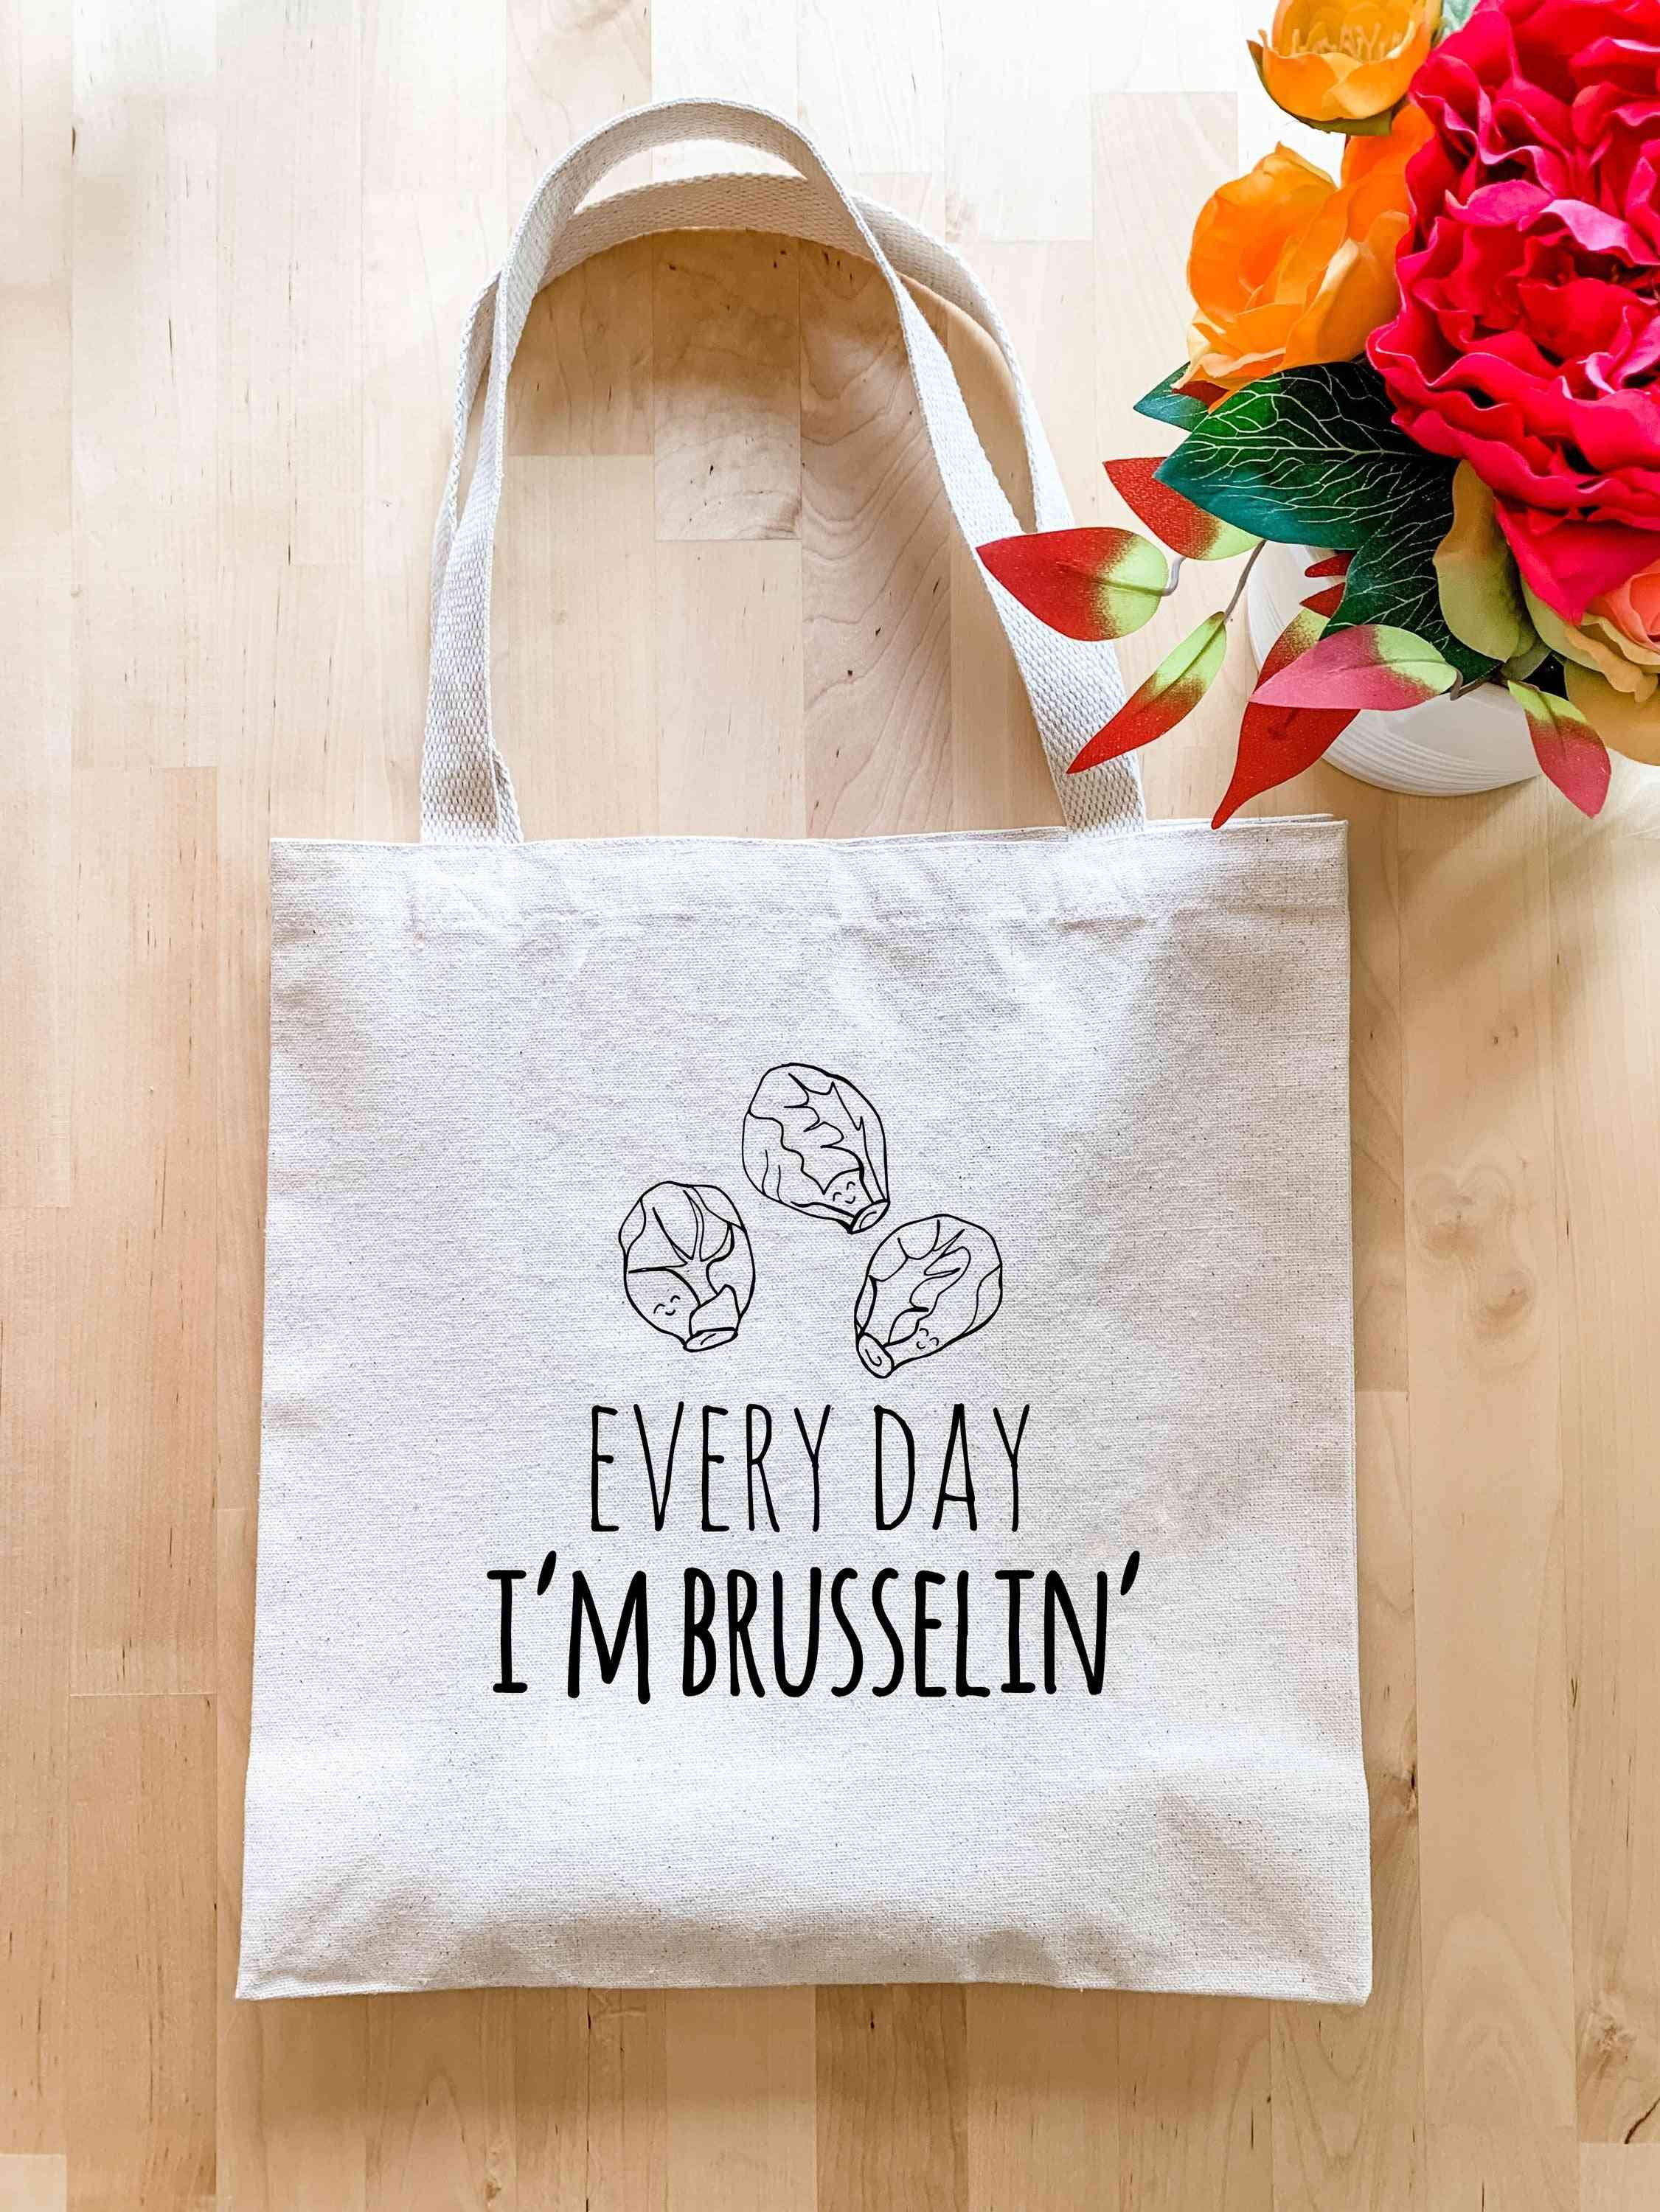 Everyday I'm Brusselin' - Tote Bag